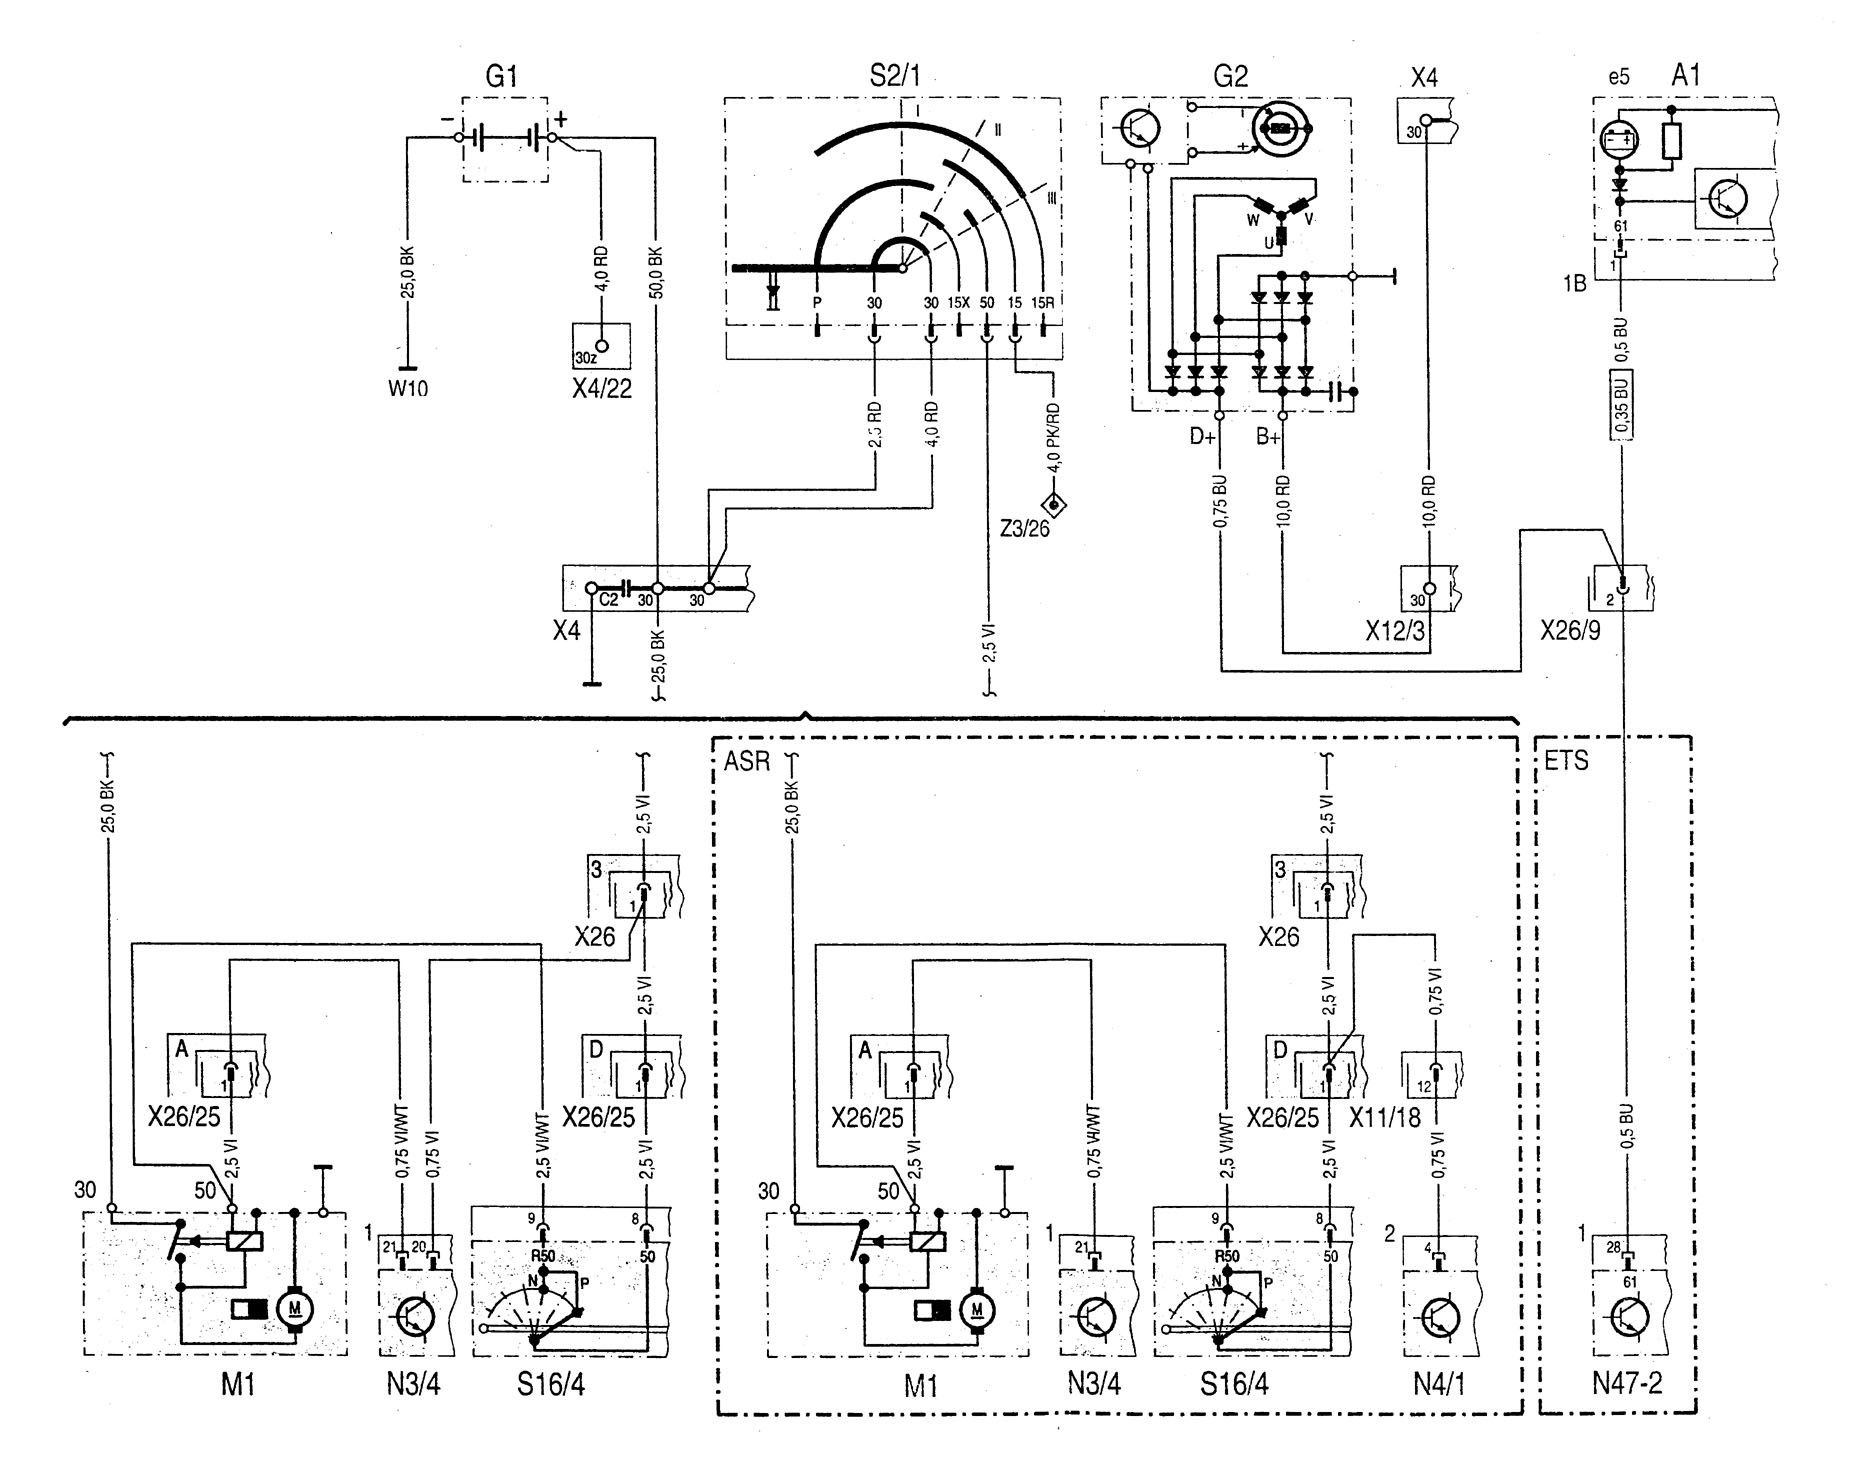 mercedes-benz c280  1994 - 1997  - wiring diagrams - starting